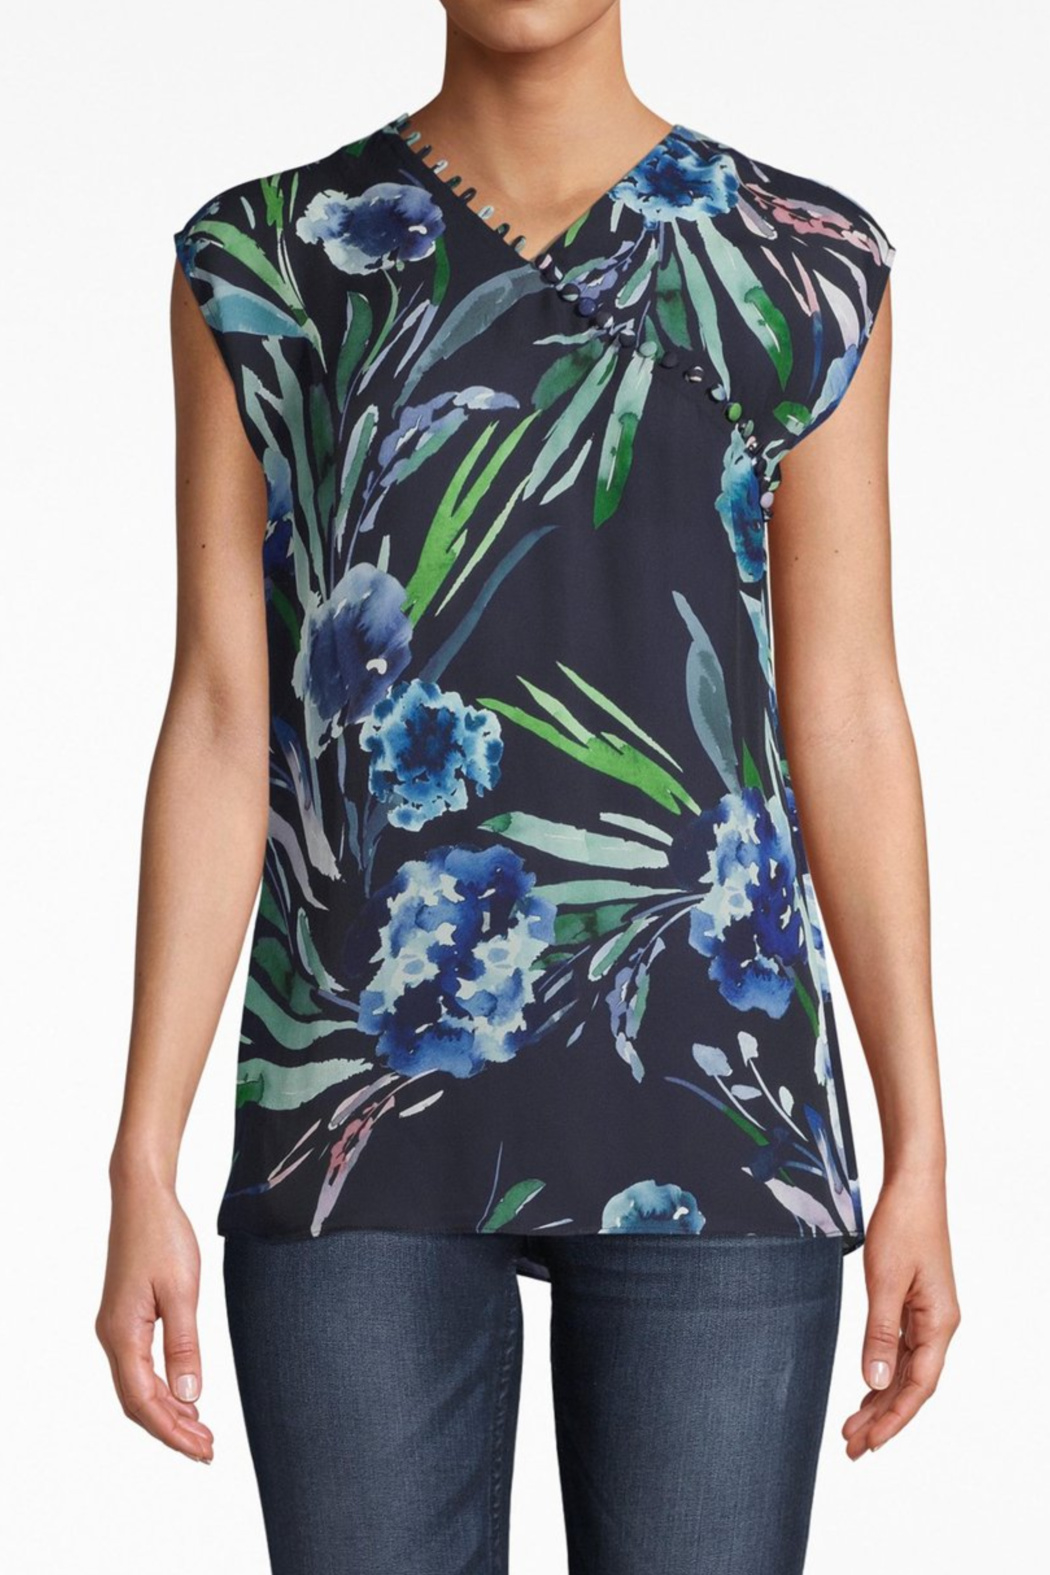 Nicole Miller Mirage Button-Loop Blouse - Main Image